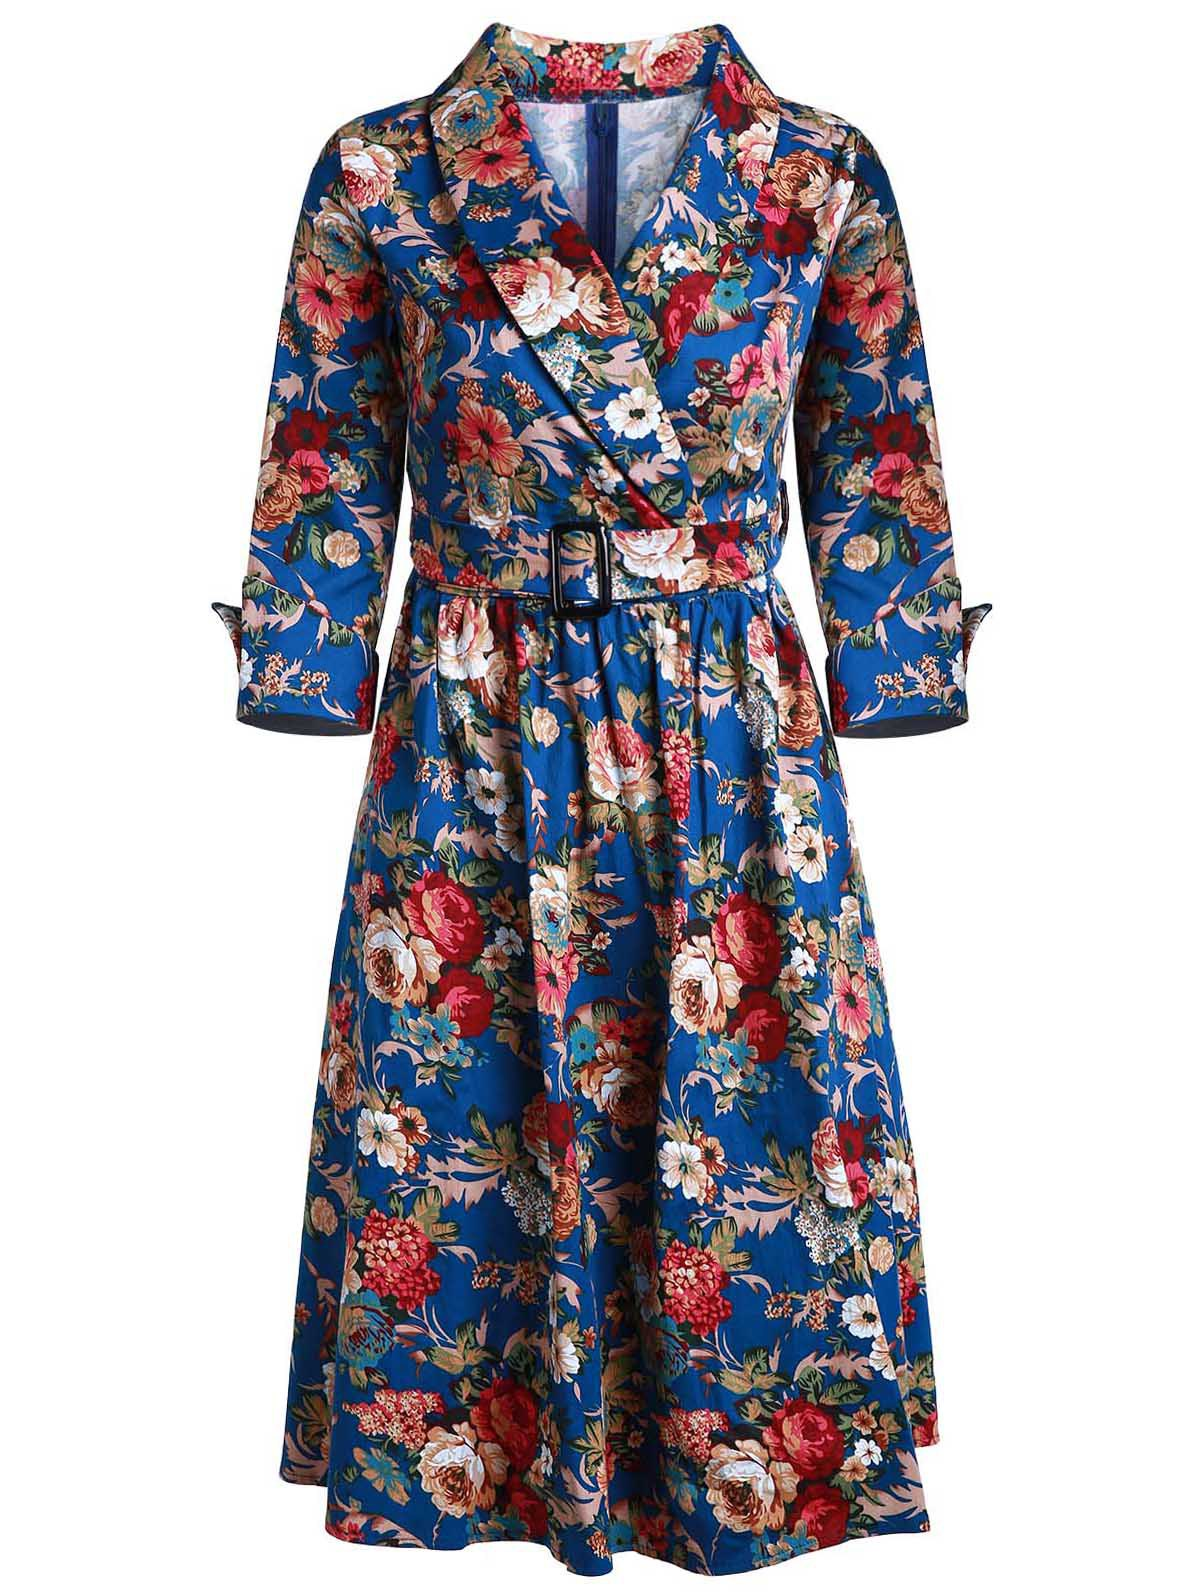 Vintage Style 3/4 Sleeve Shawl Collar Flower Pattern Women's Dress - DEEP BLUE S